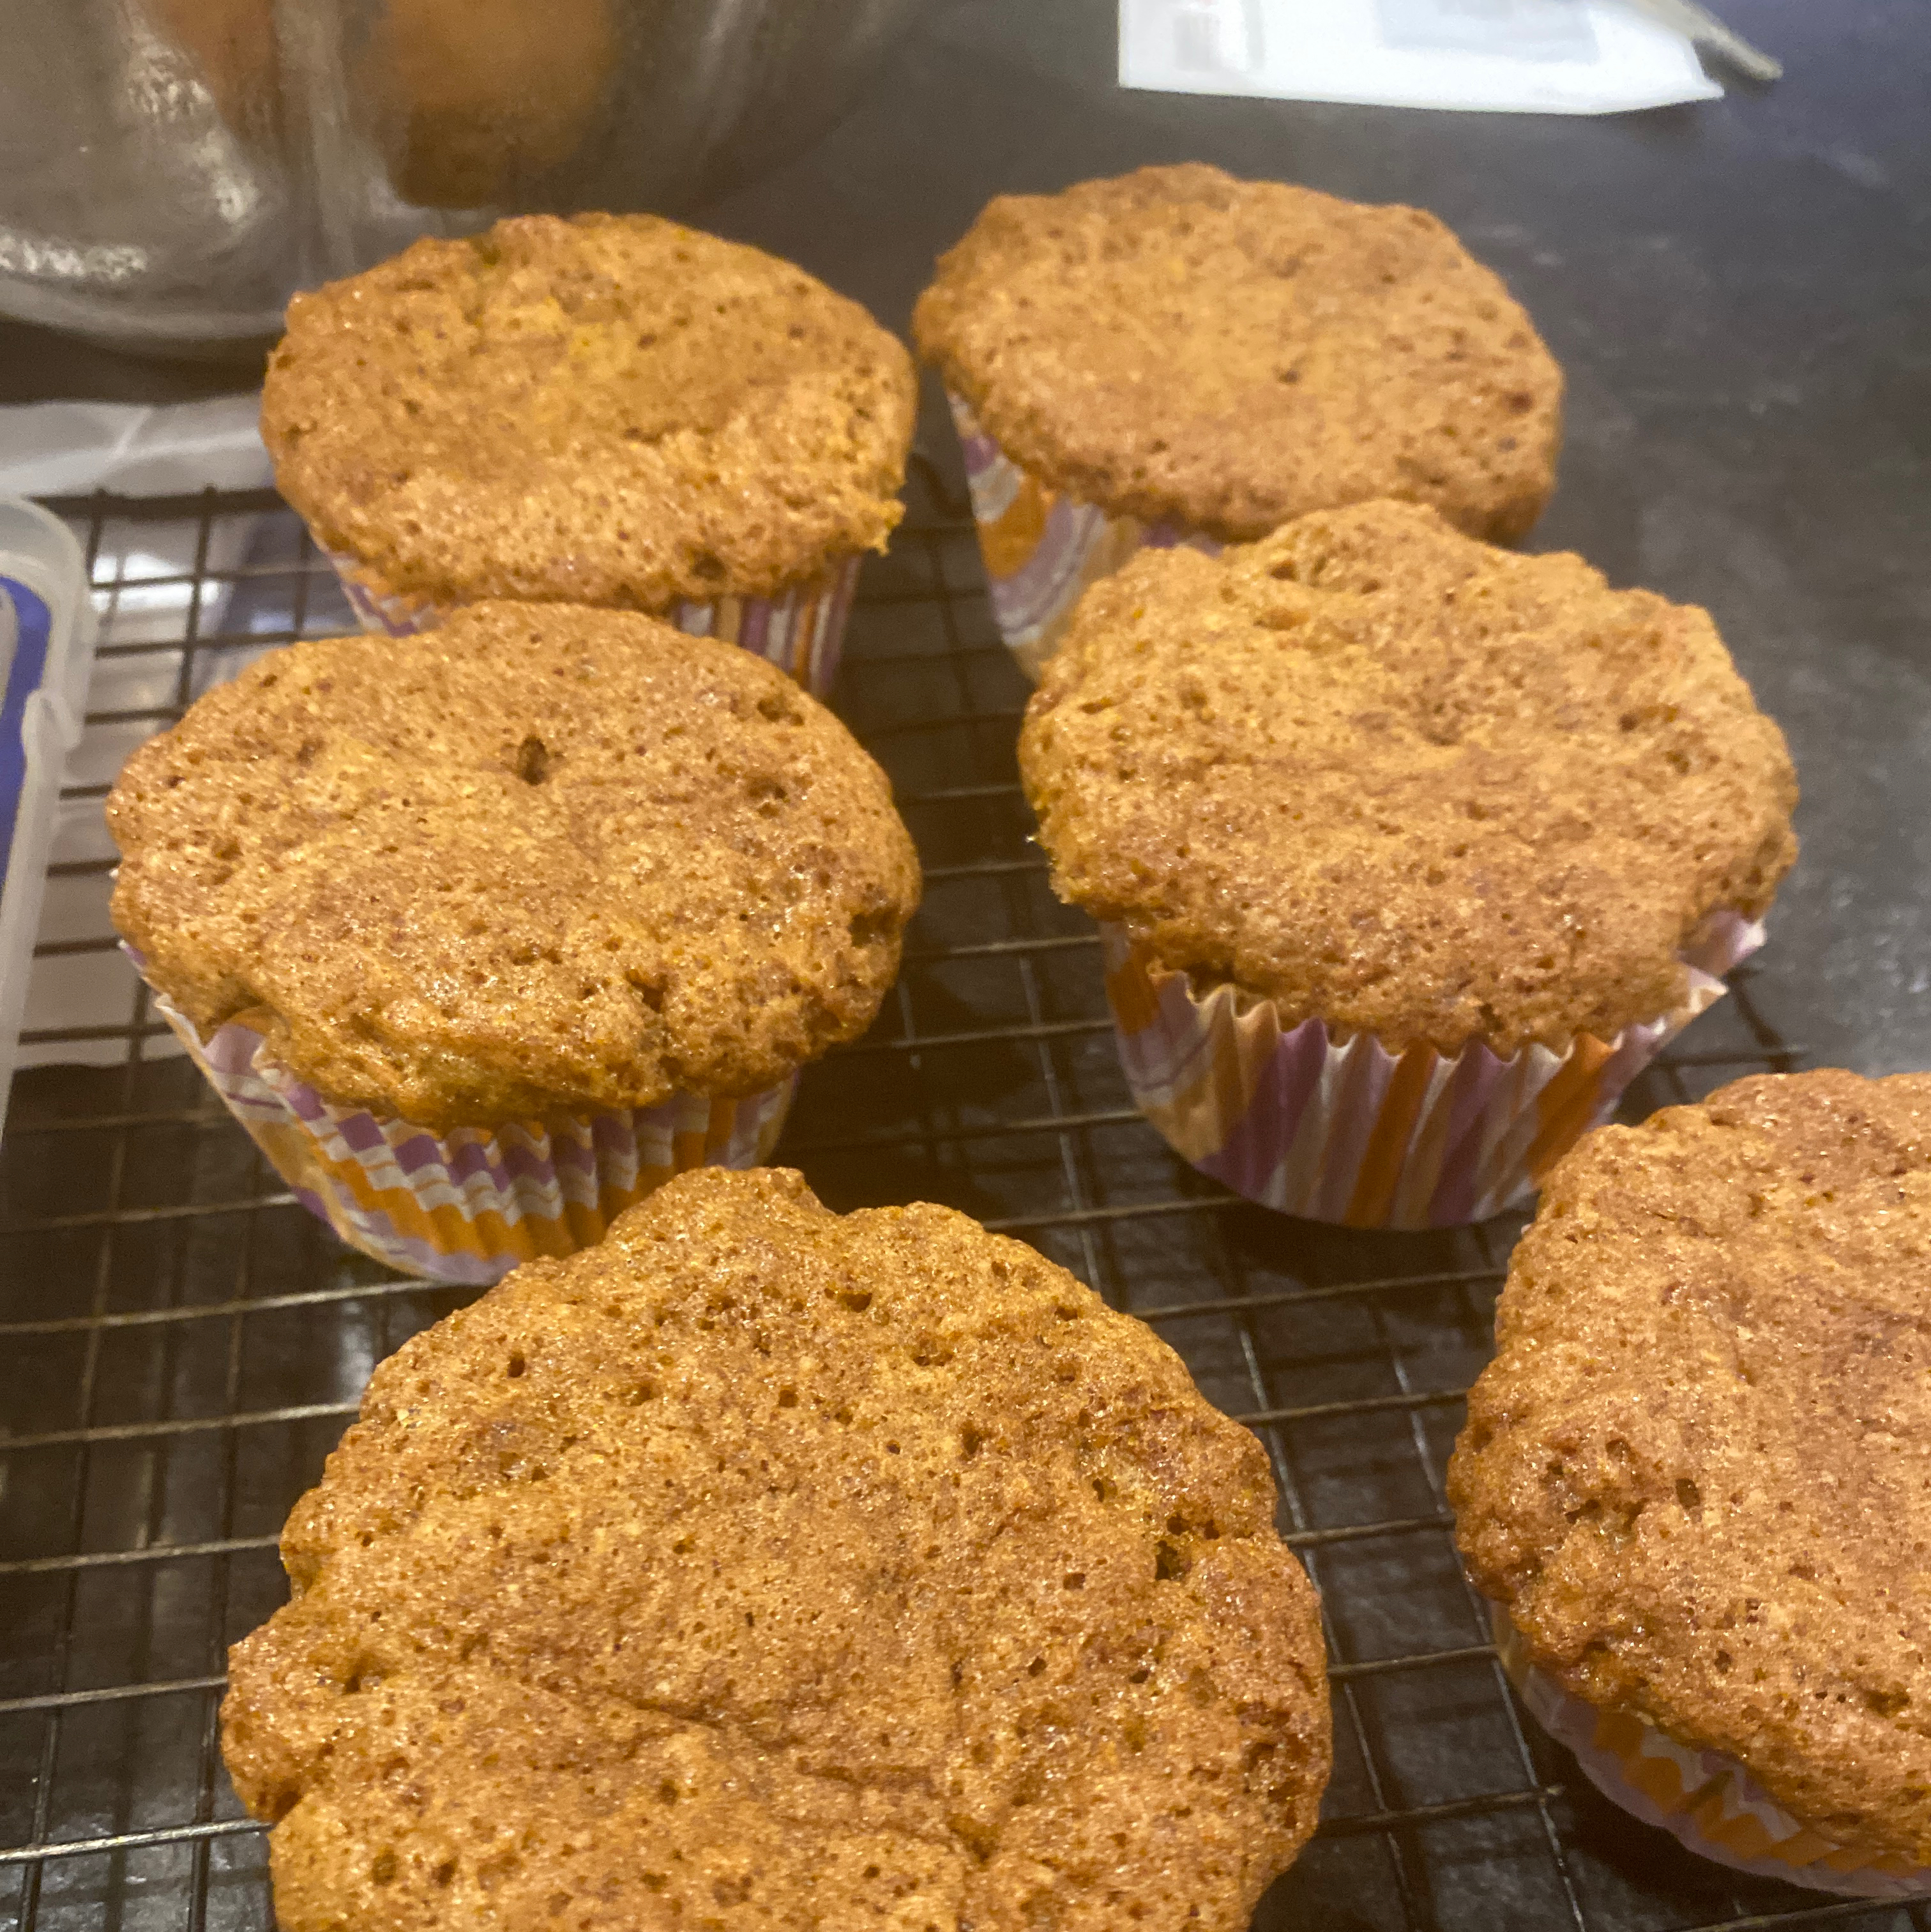 Fluffy Carrot Muffins with Cream Cheese Frosting Cara Corpieri